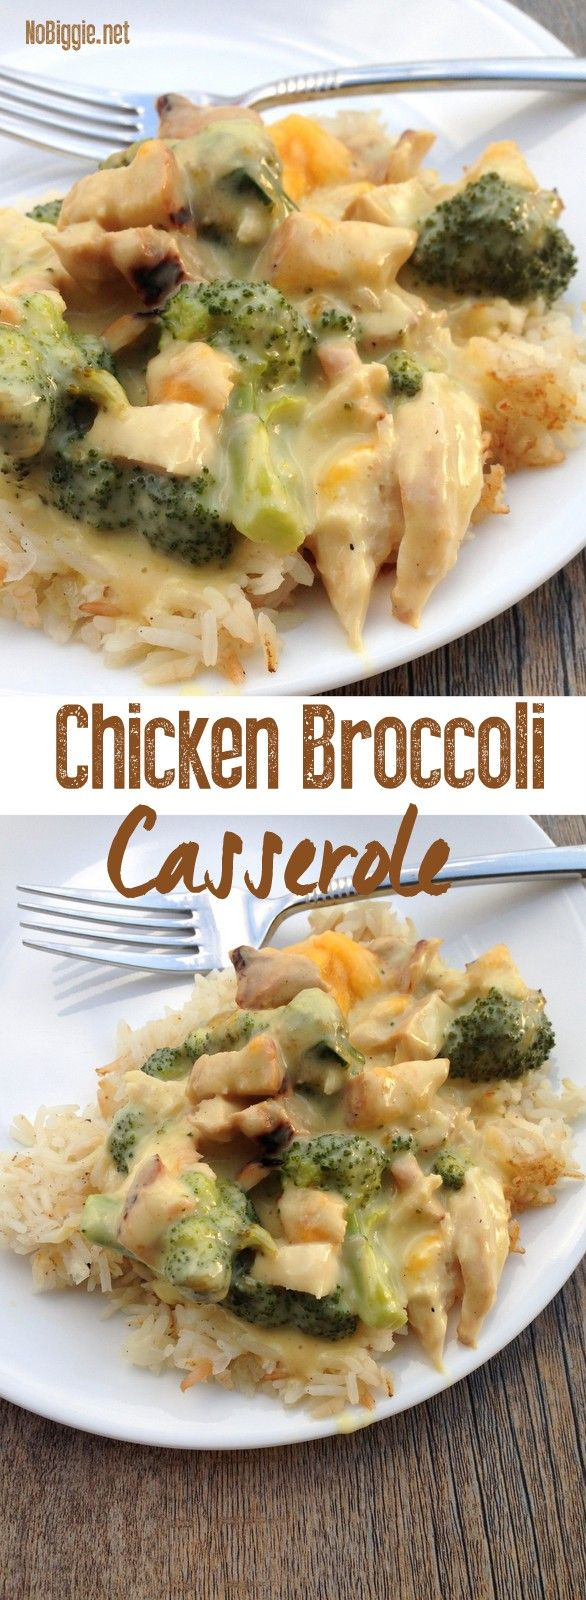 Chicken Broccoli Casserole recipe with video | NoBiggie.net